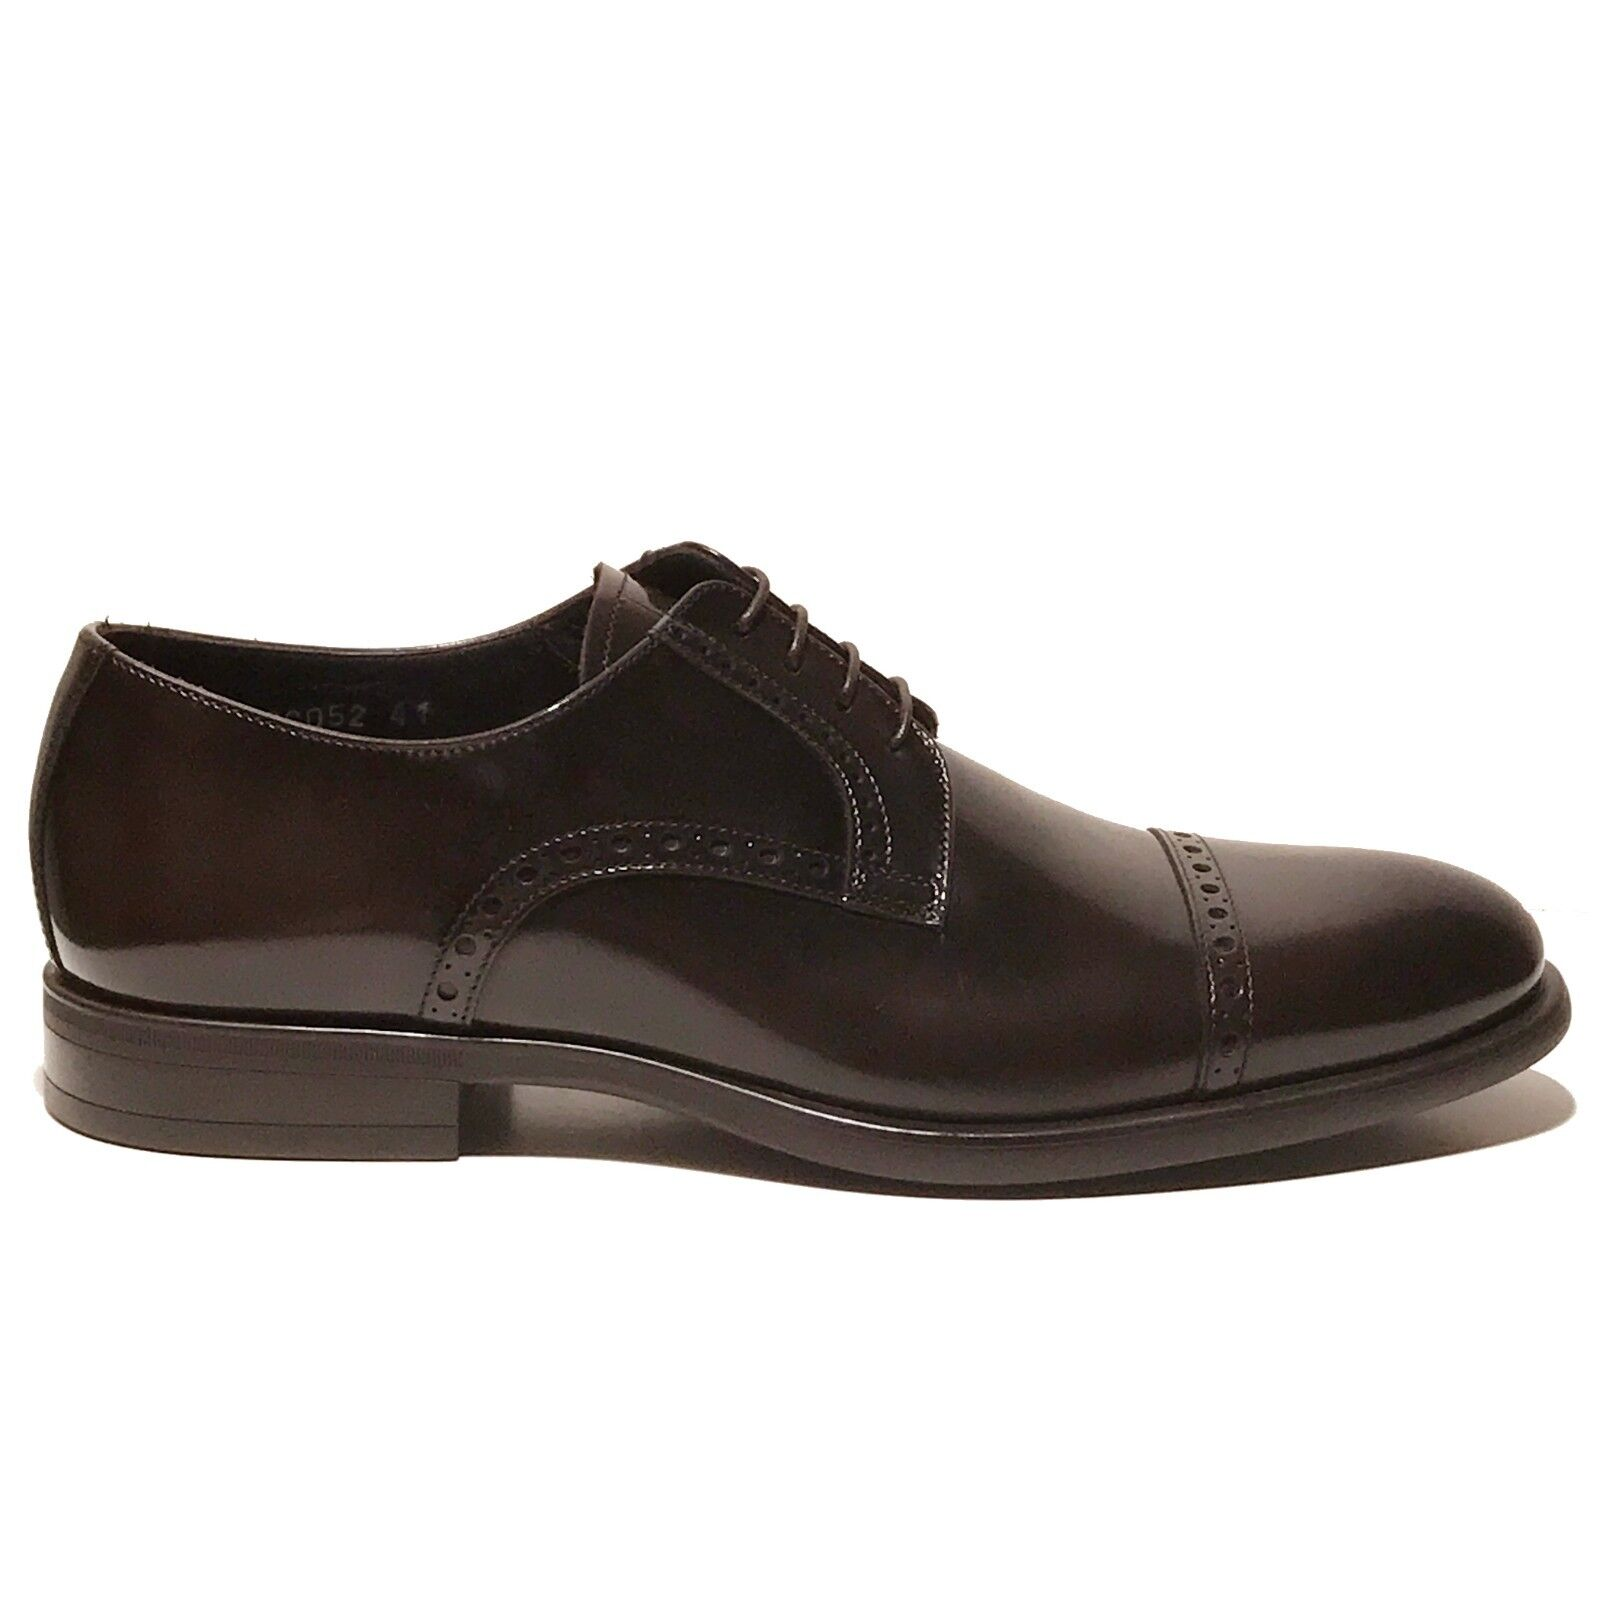 New ARMANI Brown Leather Formal Dress Derby Derby Derby Captoe Oxford 7.5 Men's shoes Casual b0f555